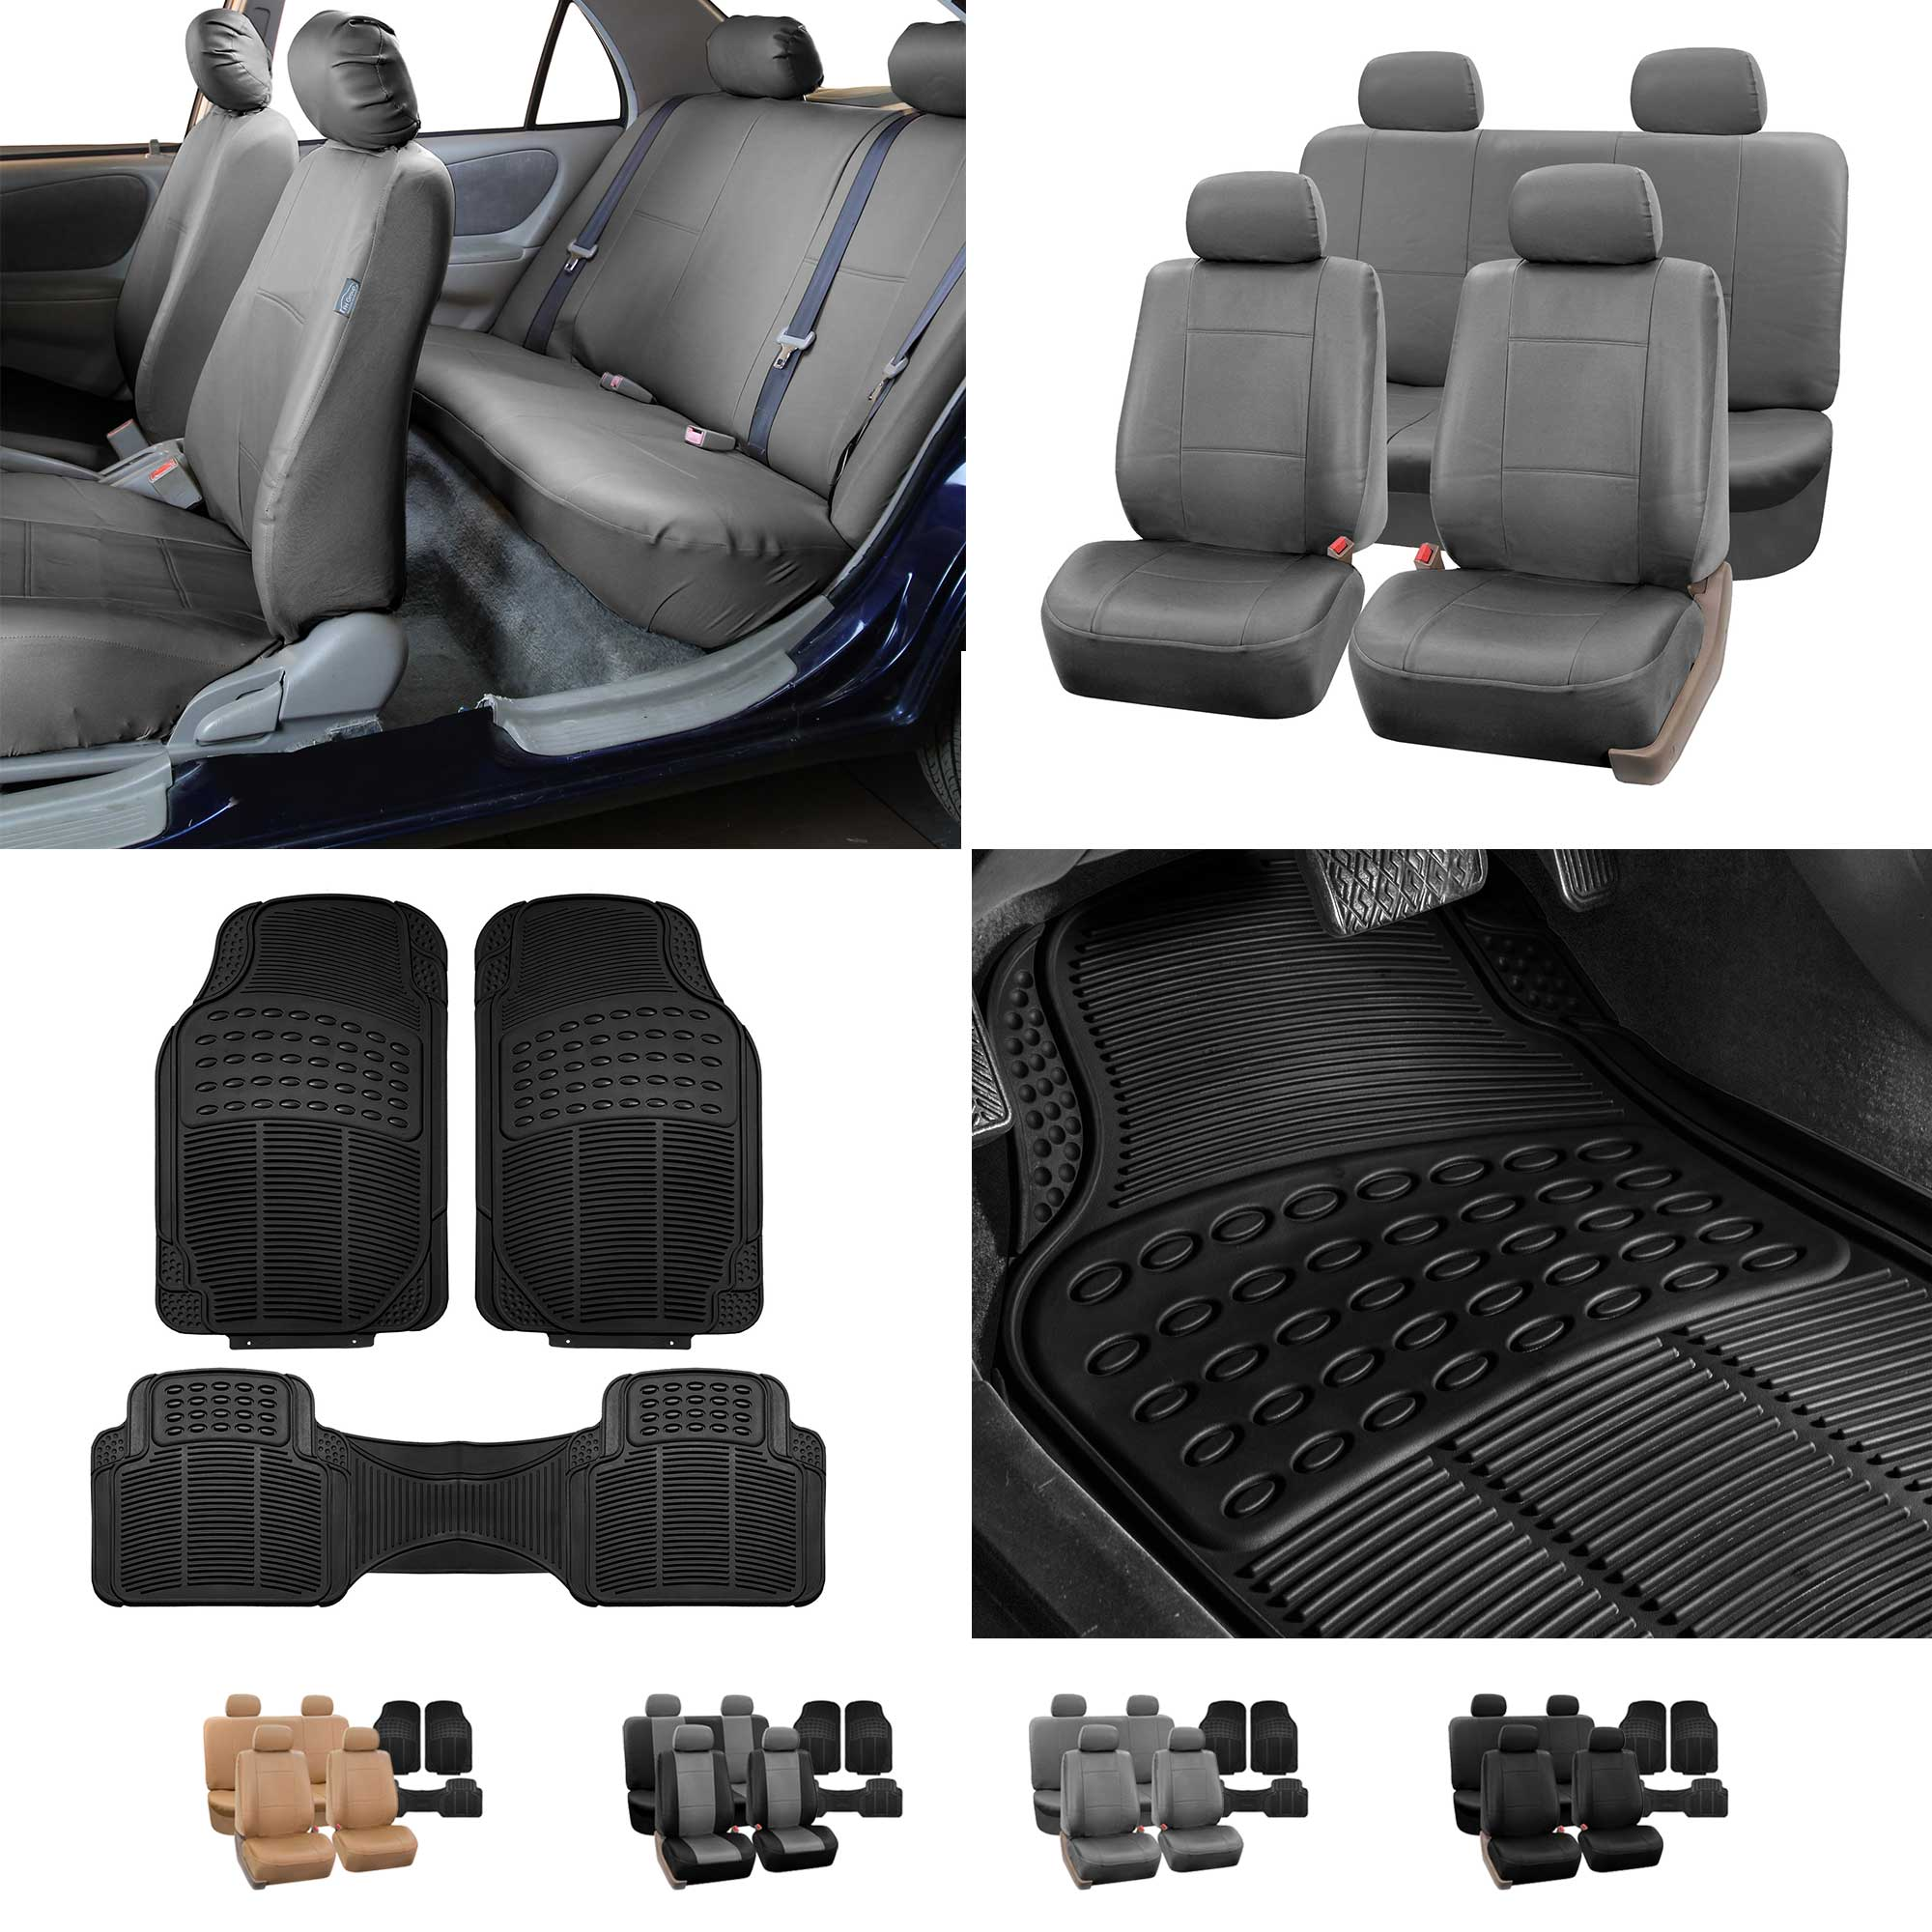 Fine Pu Leather Car Seat Covers W Floor Mats For Split Bench Caraccident5 Cool Chair Designs And Ideas Caraccident5Info